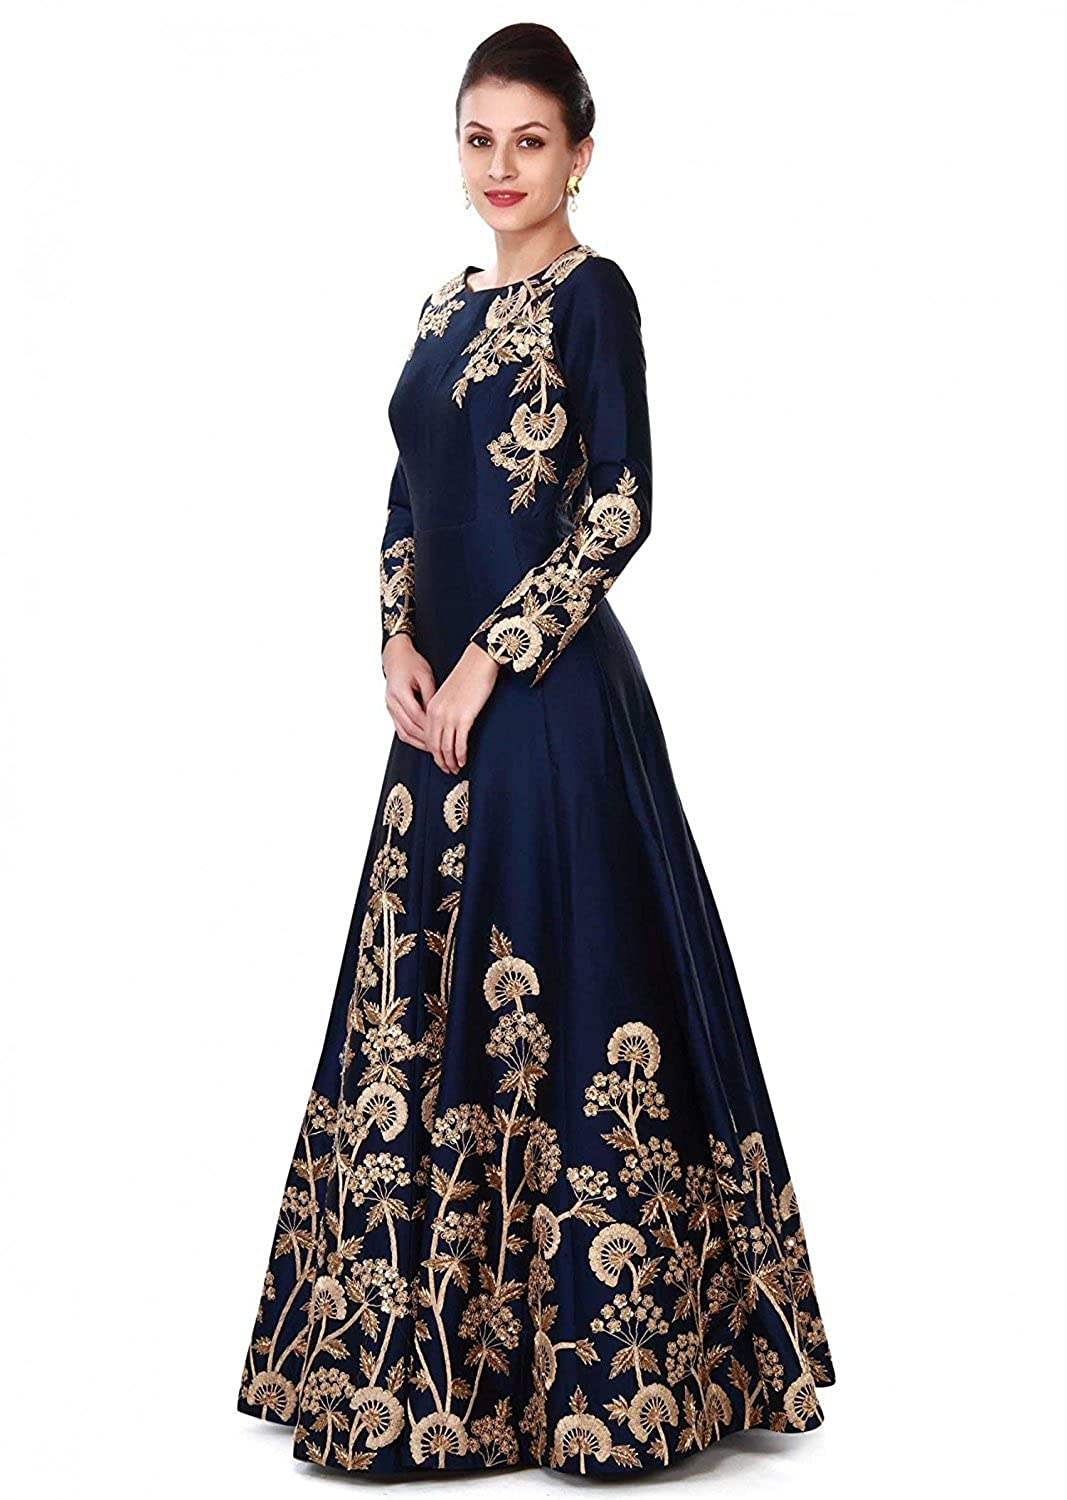 c9be24355b Ethnic Empire Women s Taffeta Silk Semi Stitched Anarkali Salwar Suits  (Eed-Ea10756 Blue Free Size)  Amazon.in  Clothing   Accessories